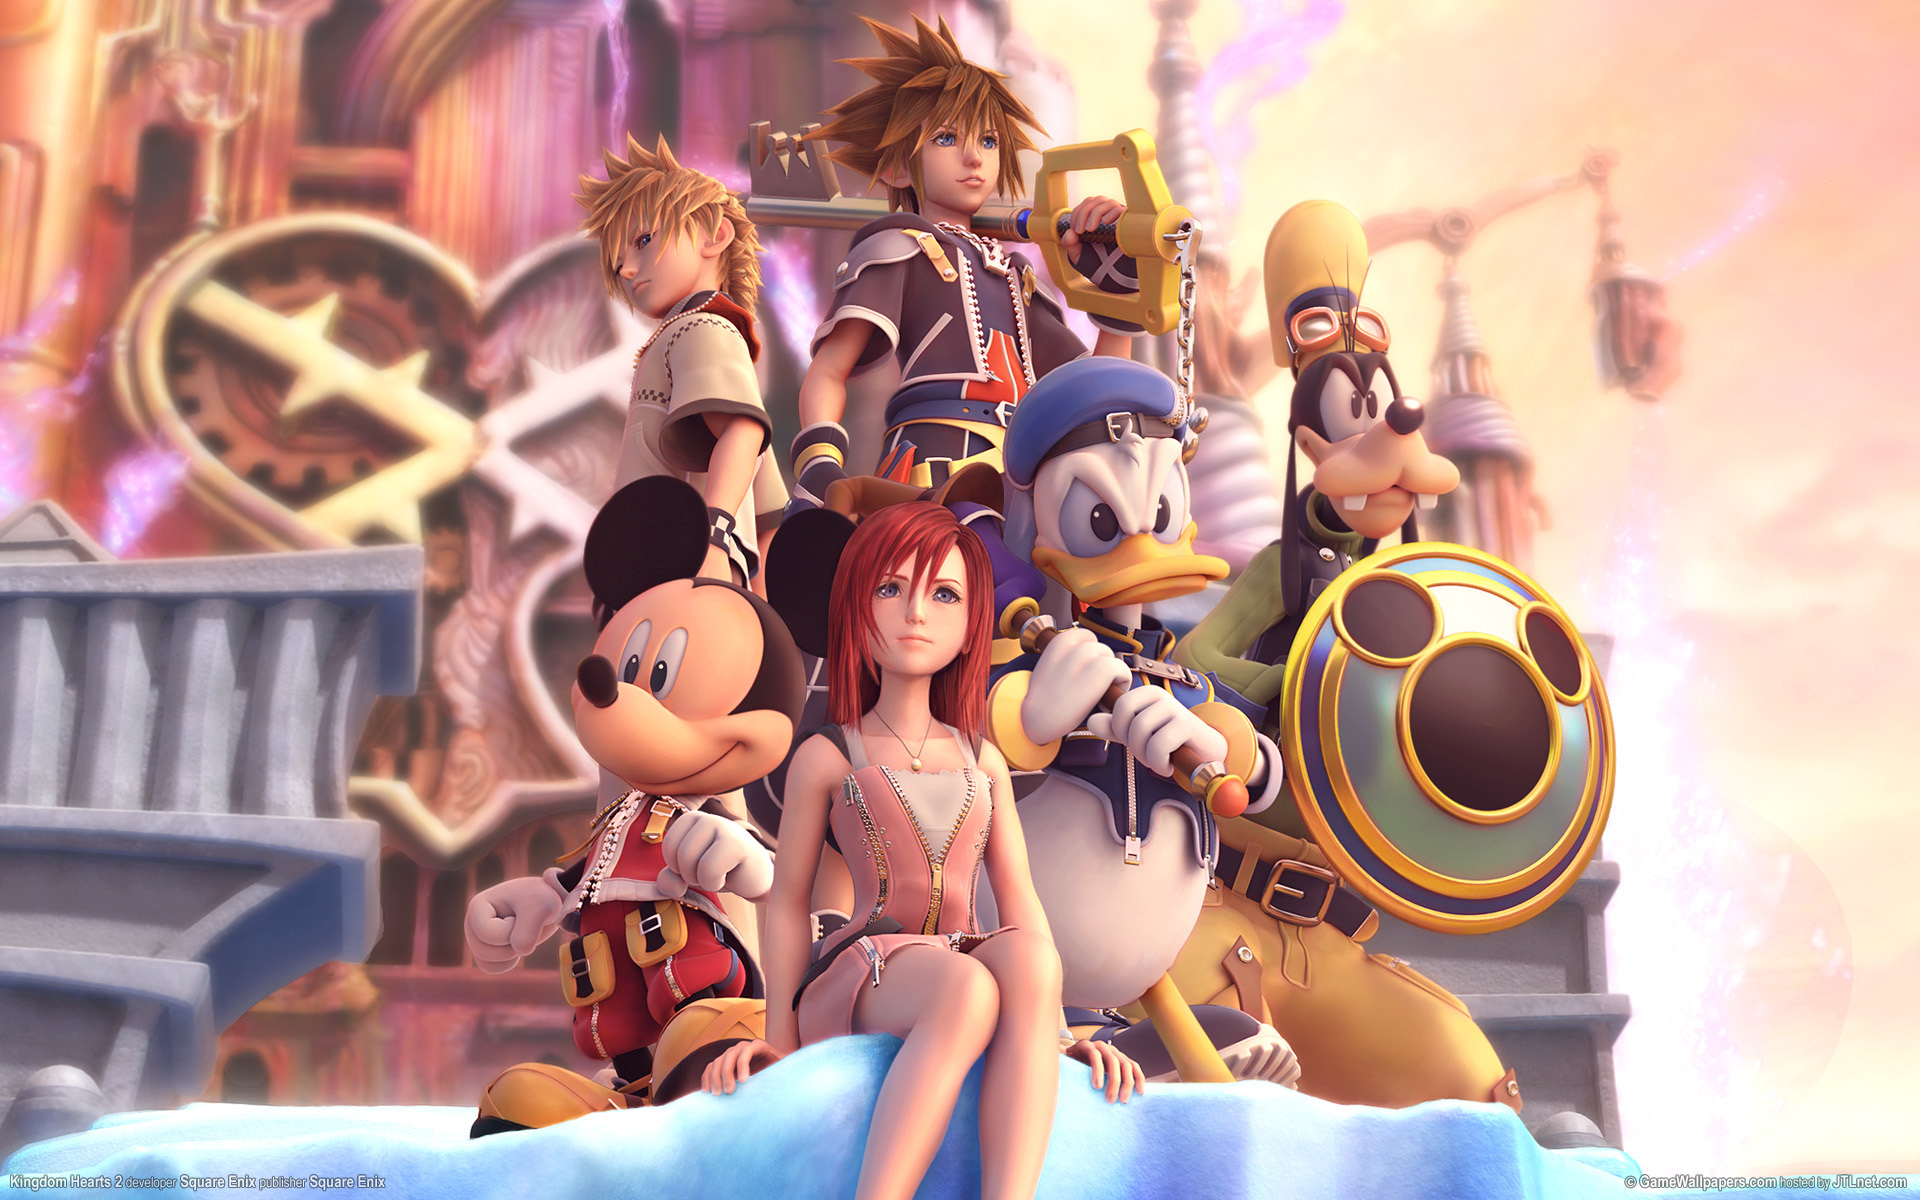 Kingdom Hearts Kairi goofy HD Wallpaper